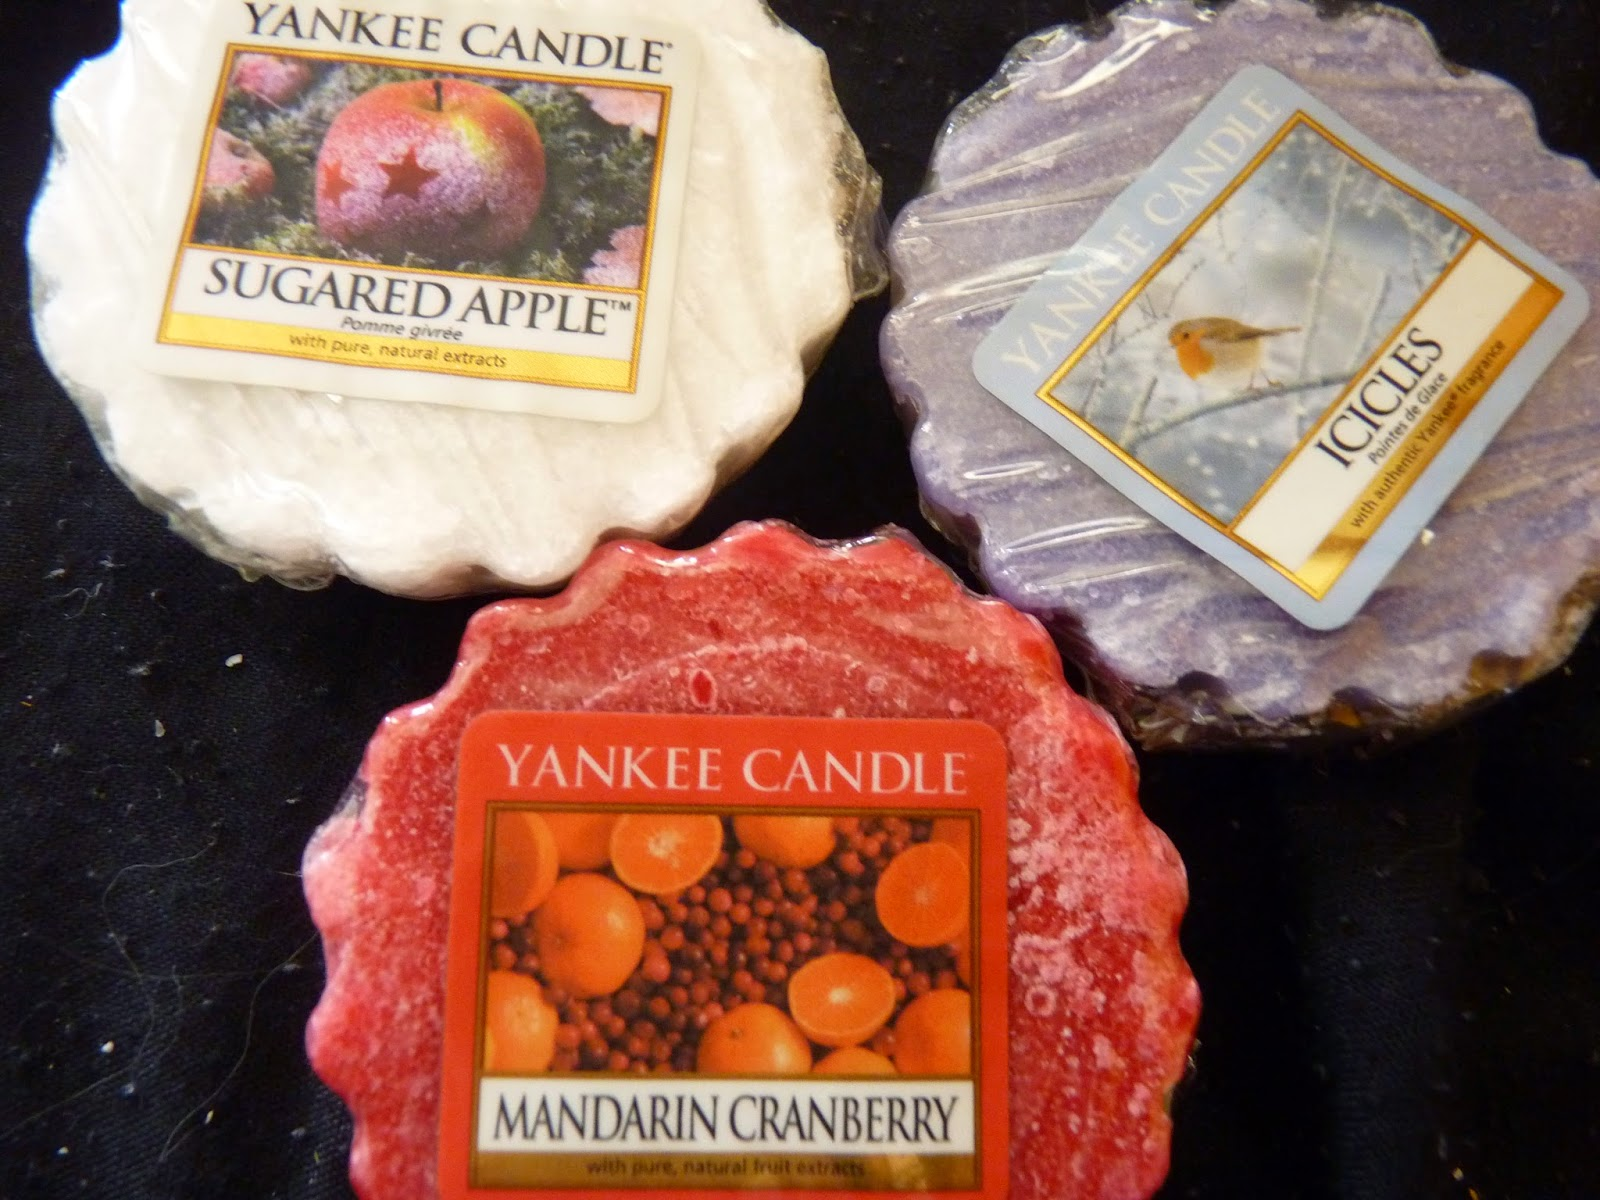 bougies yankee candle, tartelette, hiver, collection limitée, noel, cramberry mandarin, mandarine cramberry, sugared apple, pomme sucrée, icicles